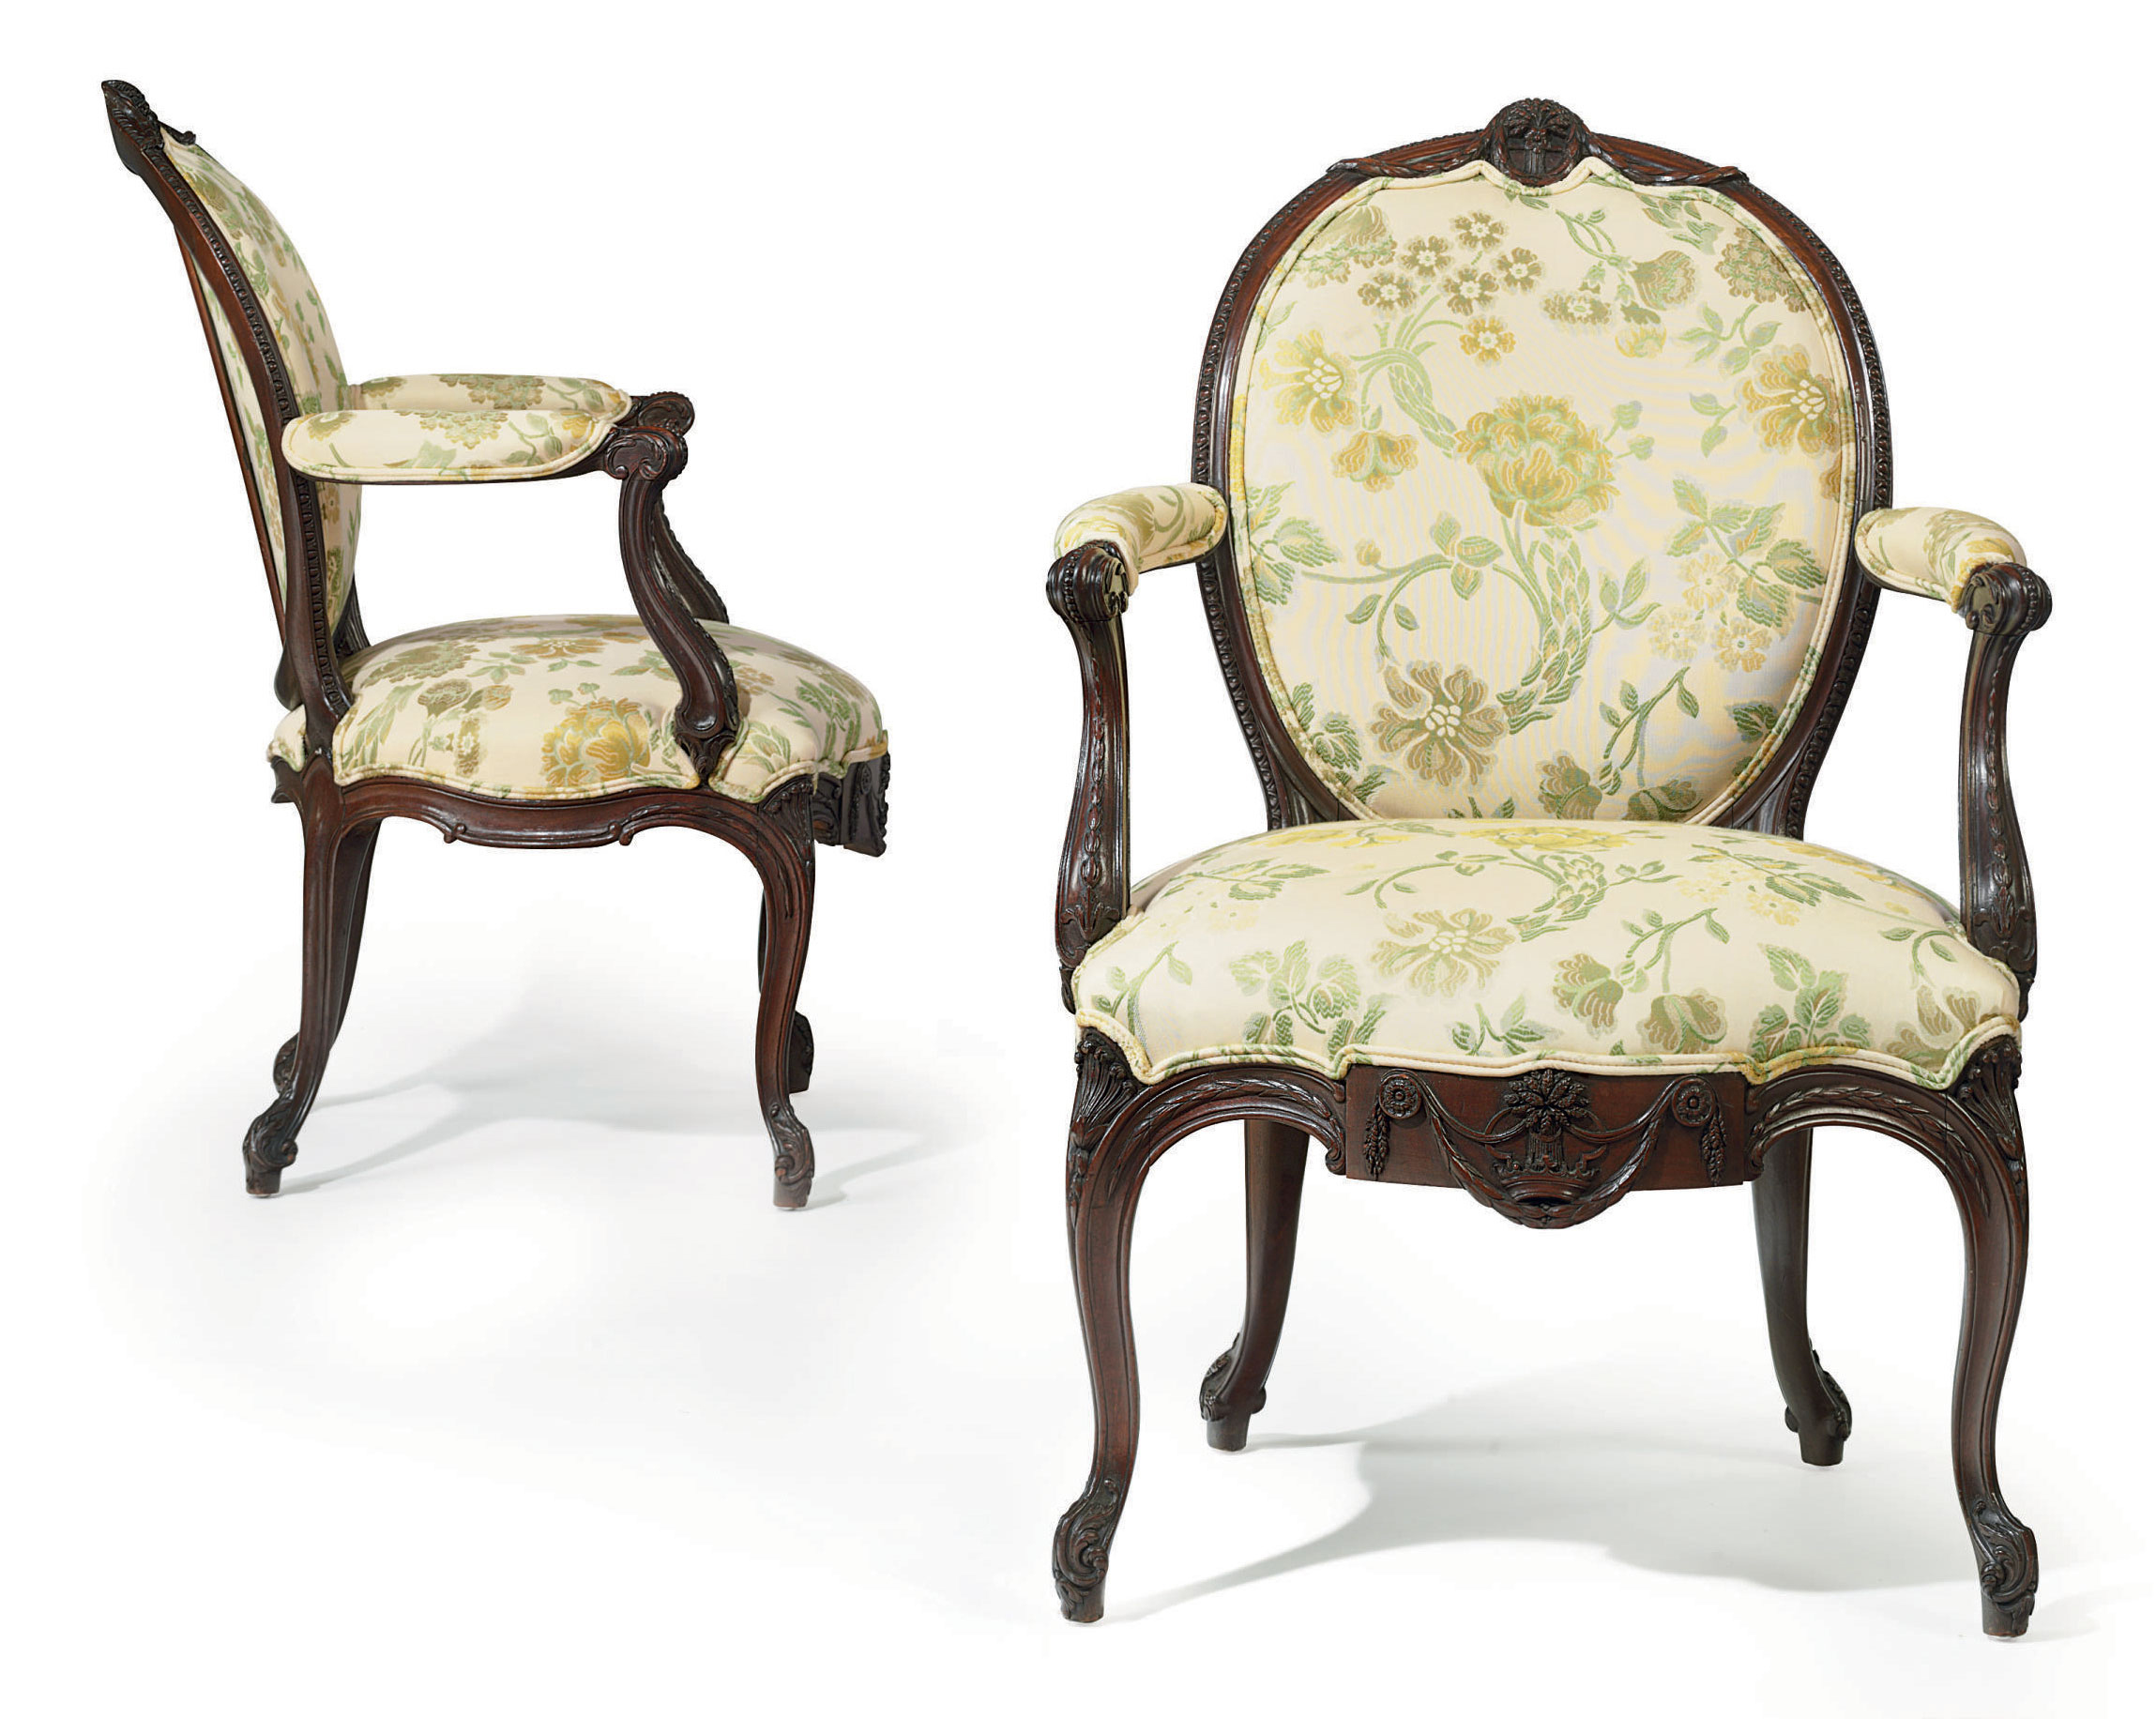 A PAIR OF GEORGE III SOLID MAHOGANY ARMCHAIRS